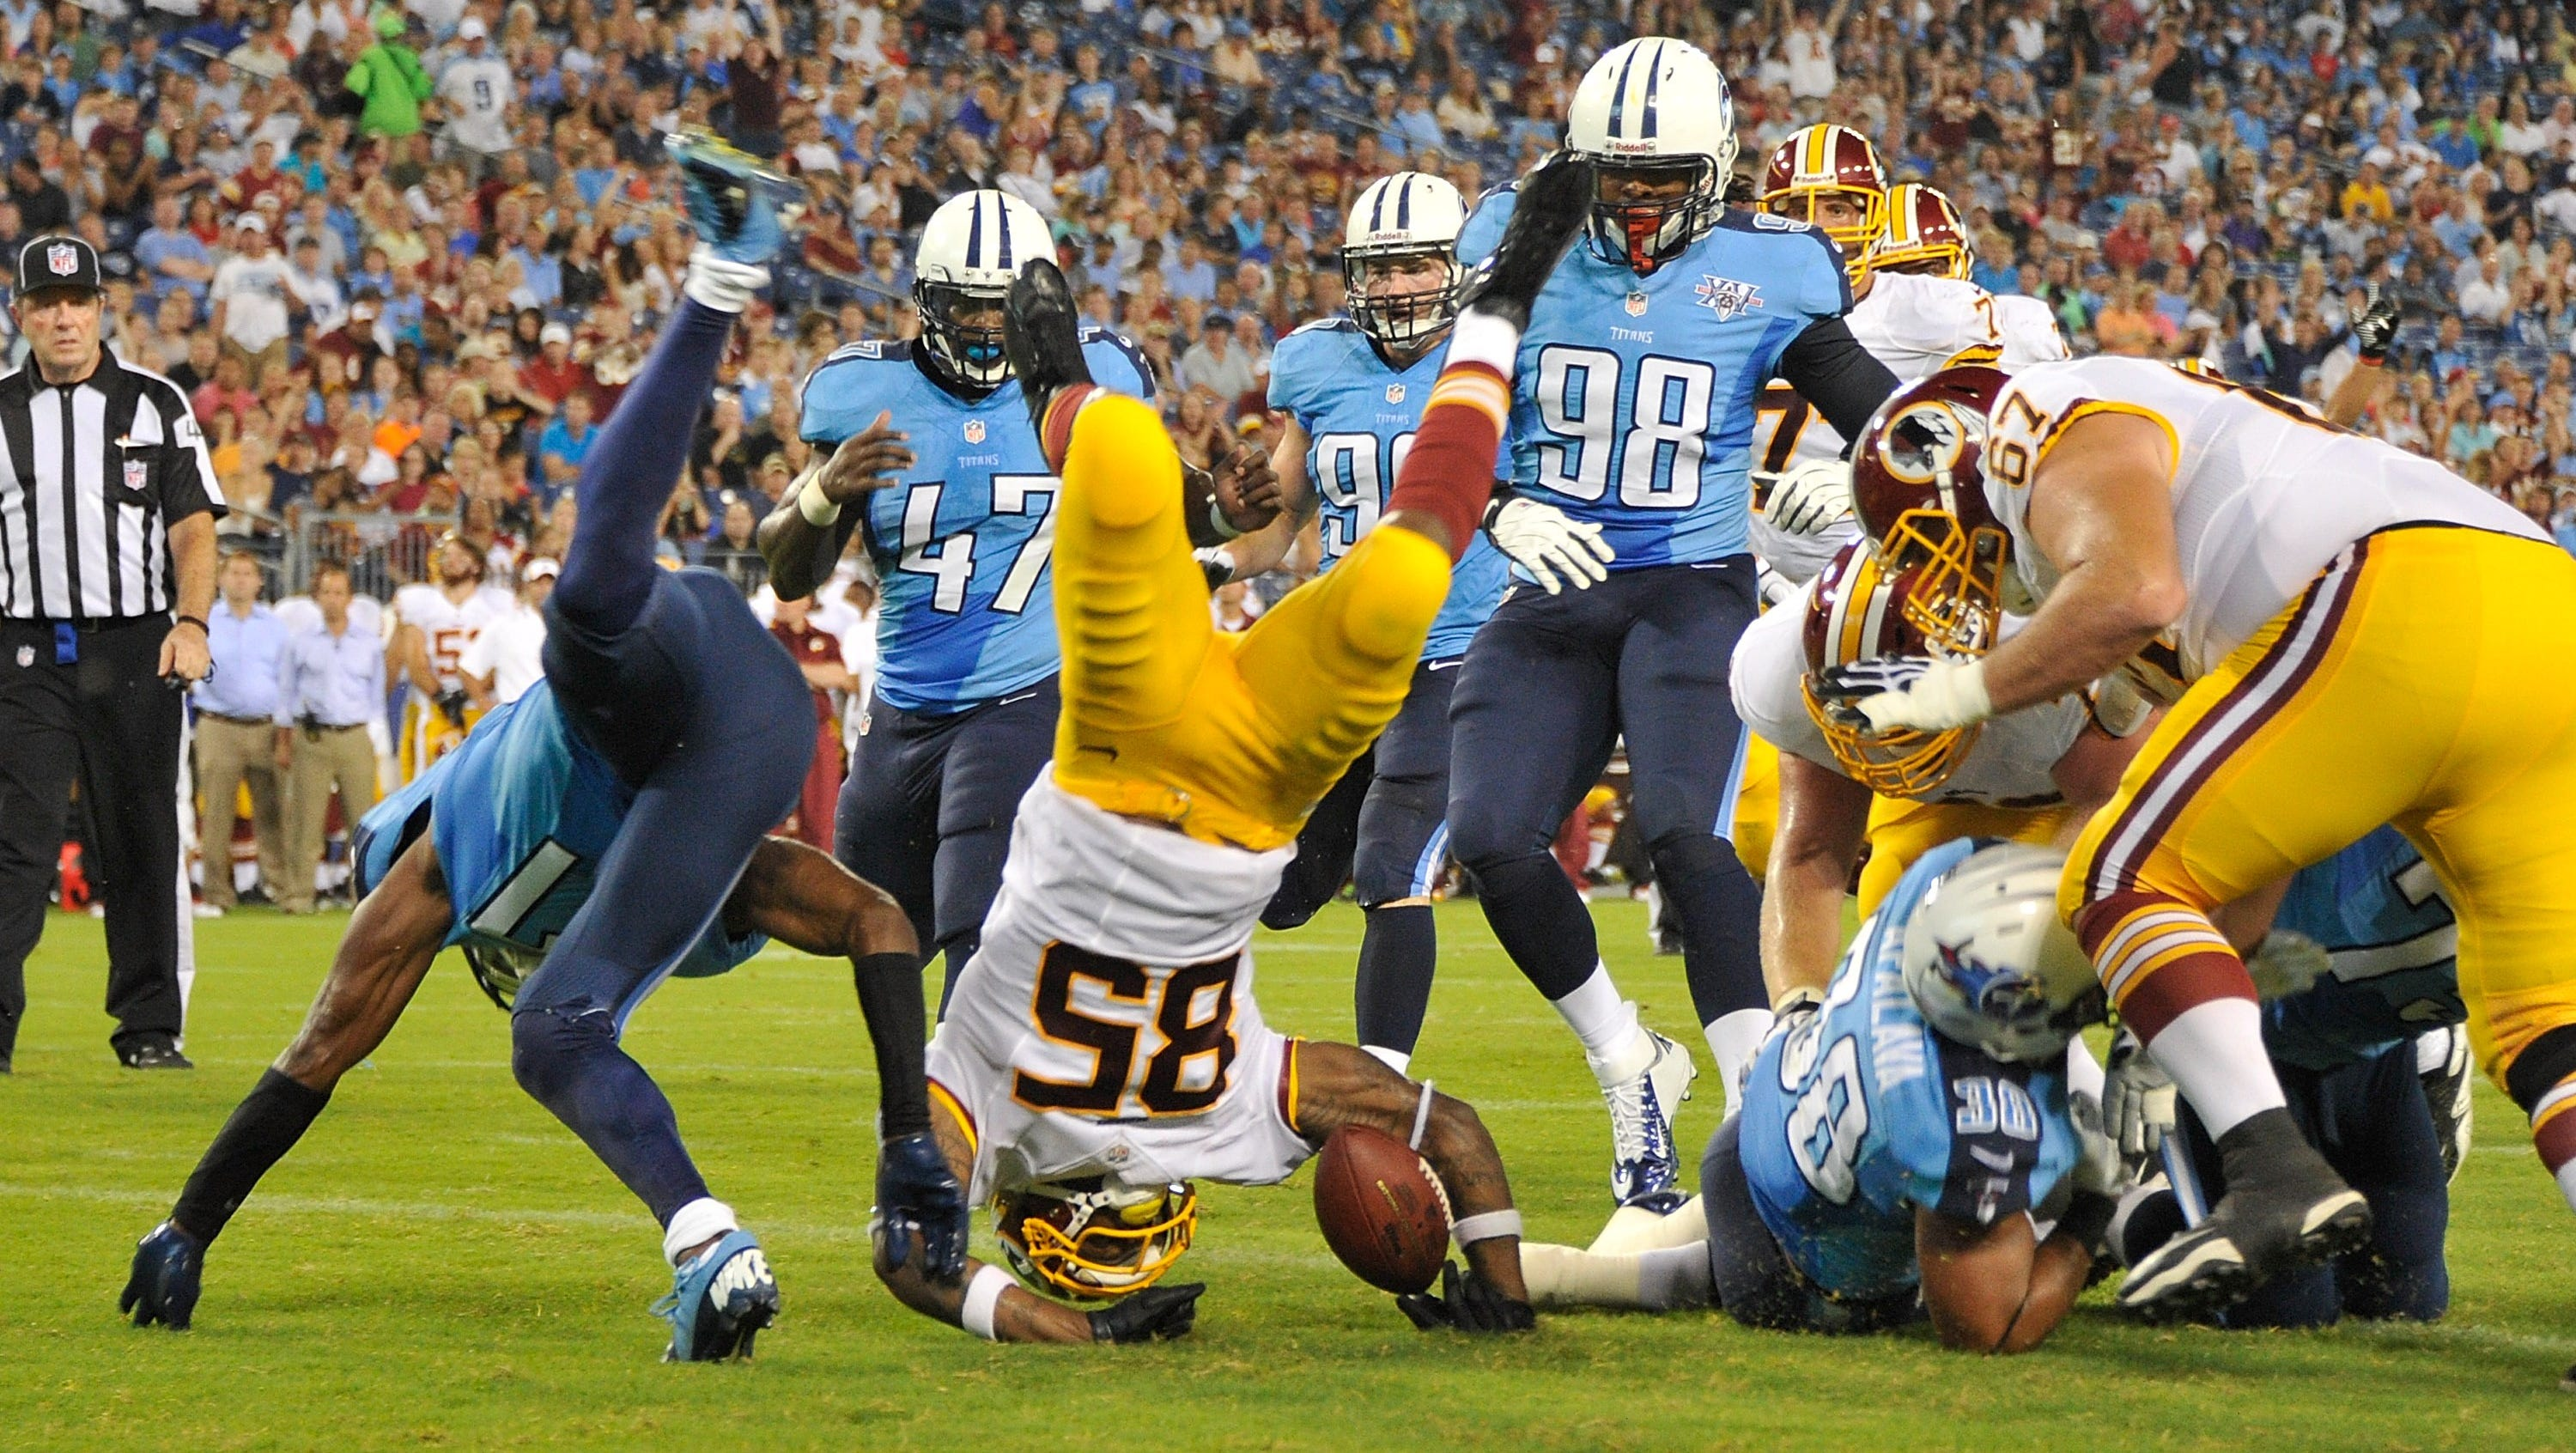 Washington Redskins wide receiver Leonard Hankerson (85) dives into the end zone to score a touchdown against the Tennessee Titans during a preseason game at LP Field.